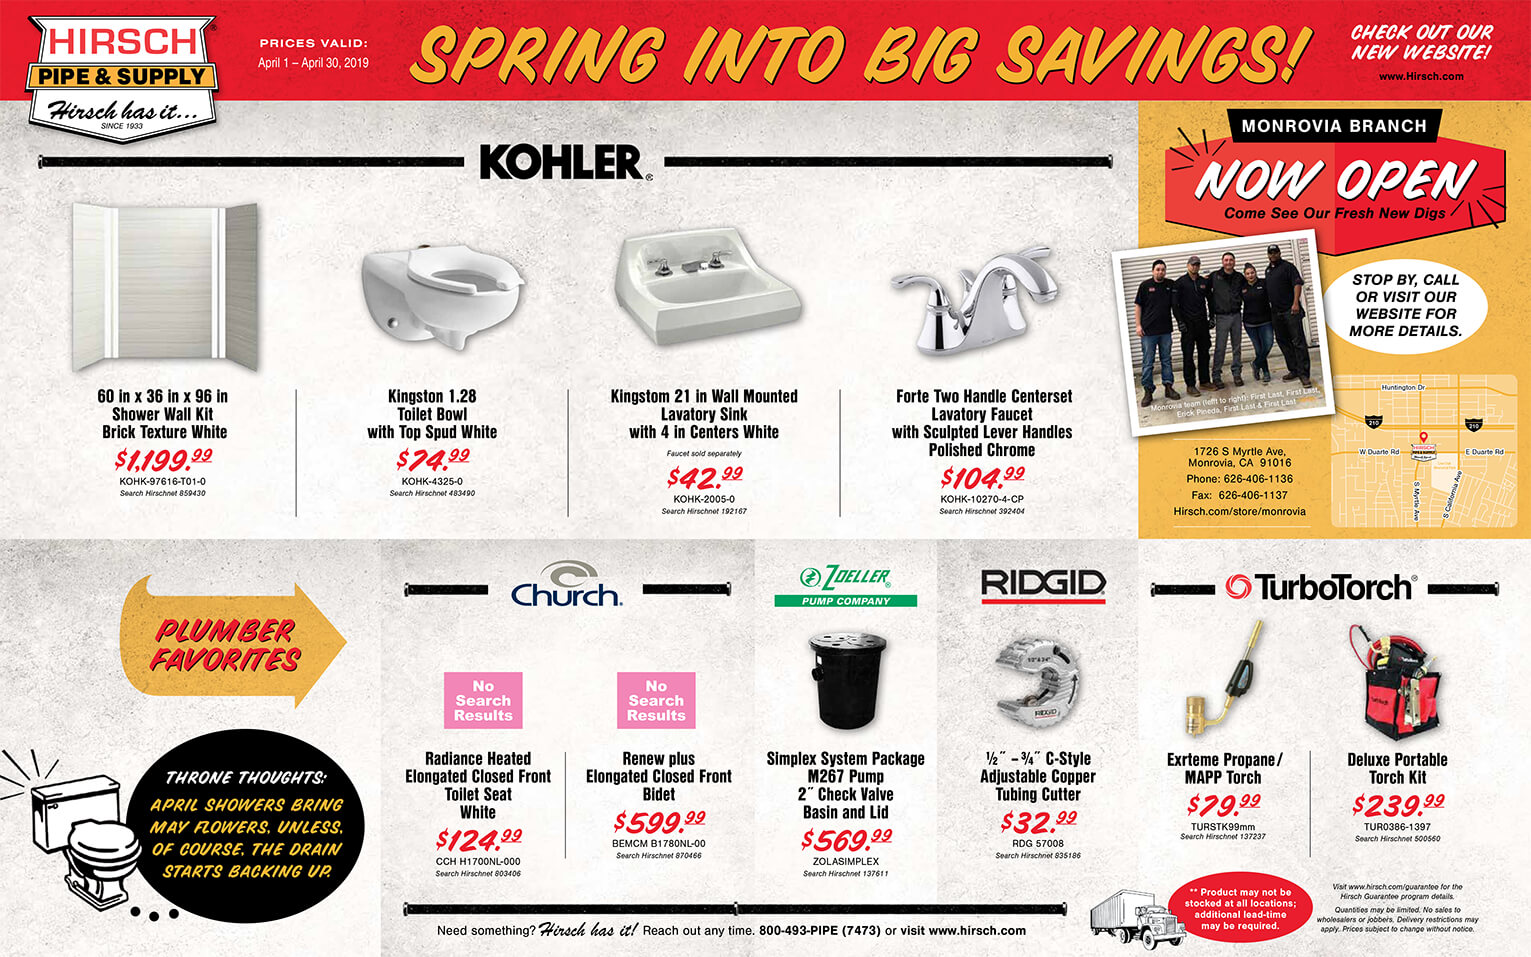 Hirsch The Pipeline - Monthly Direct Mailer